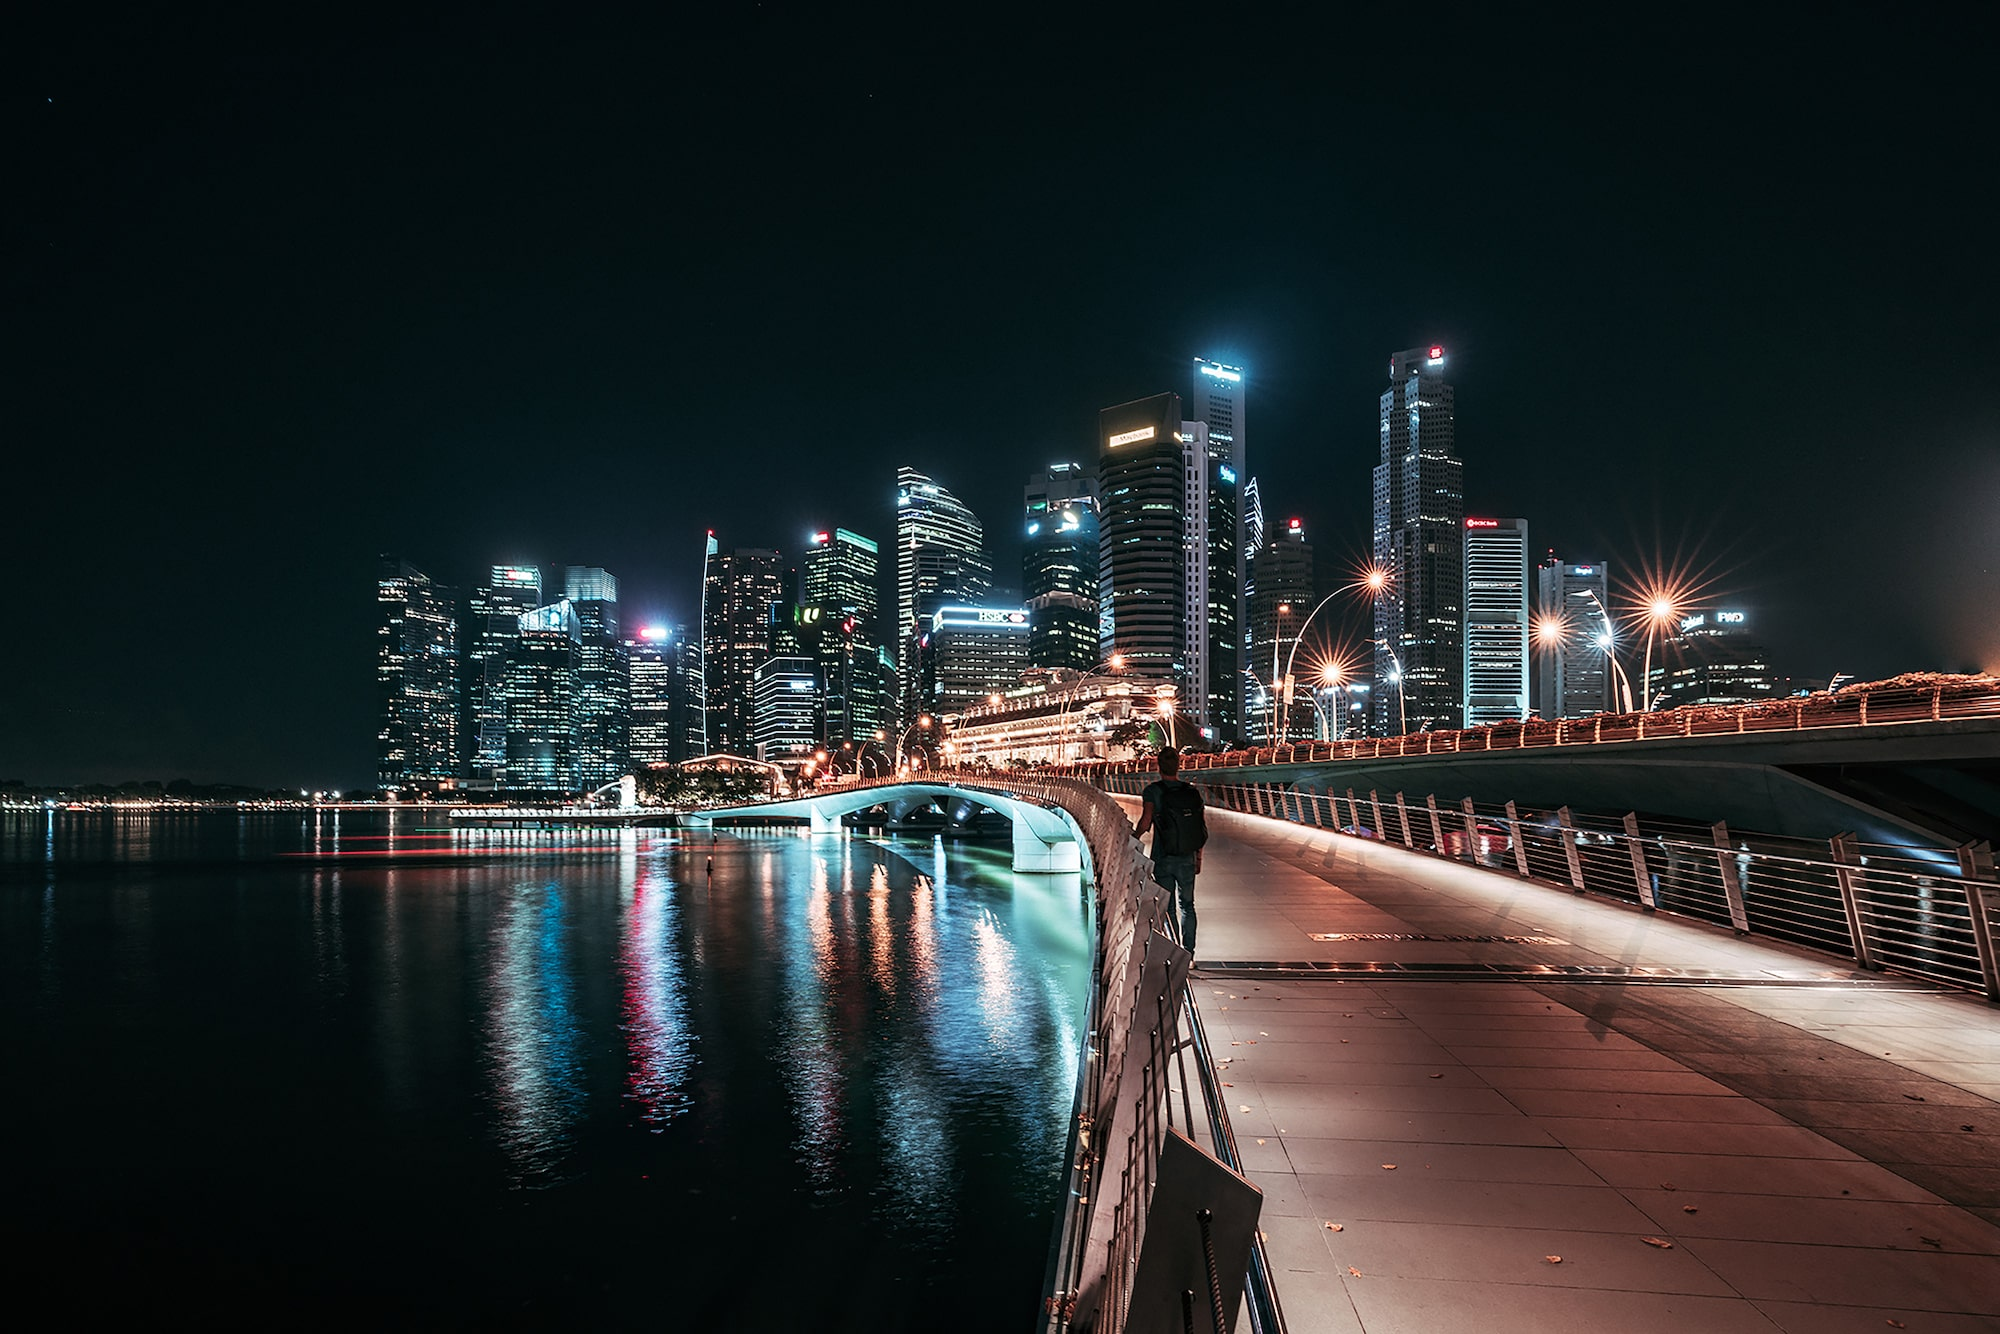 guillaume uchon sony alpha 7RIII a man walks across a bridge in singapore at night with skyscrapers on the horizon